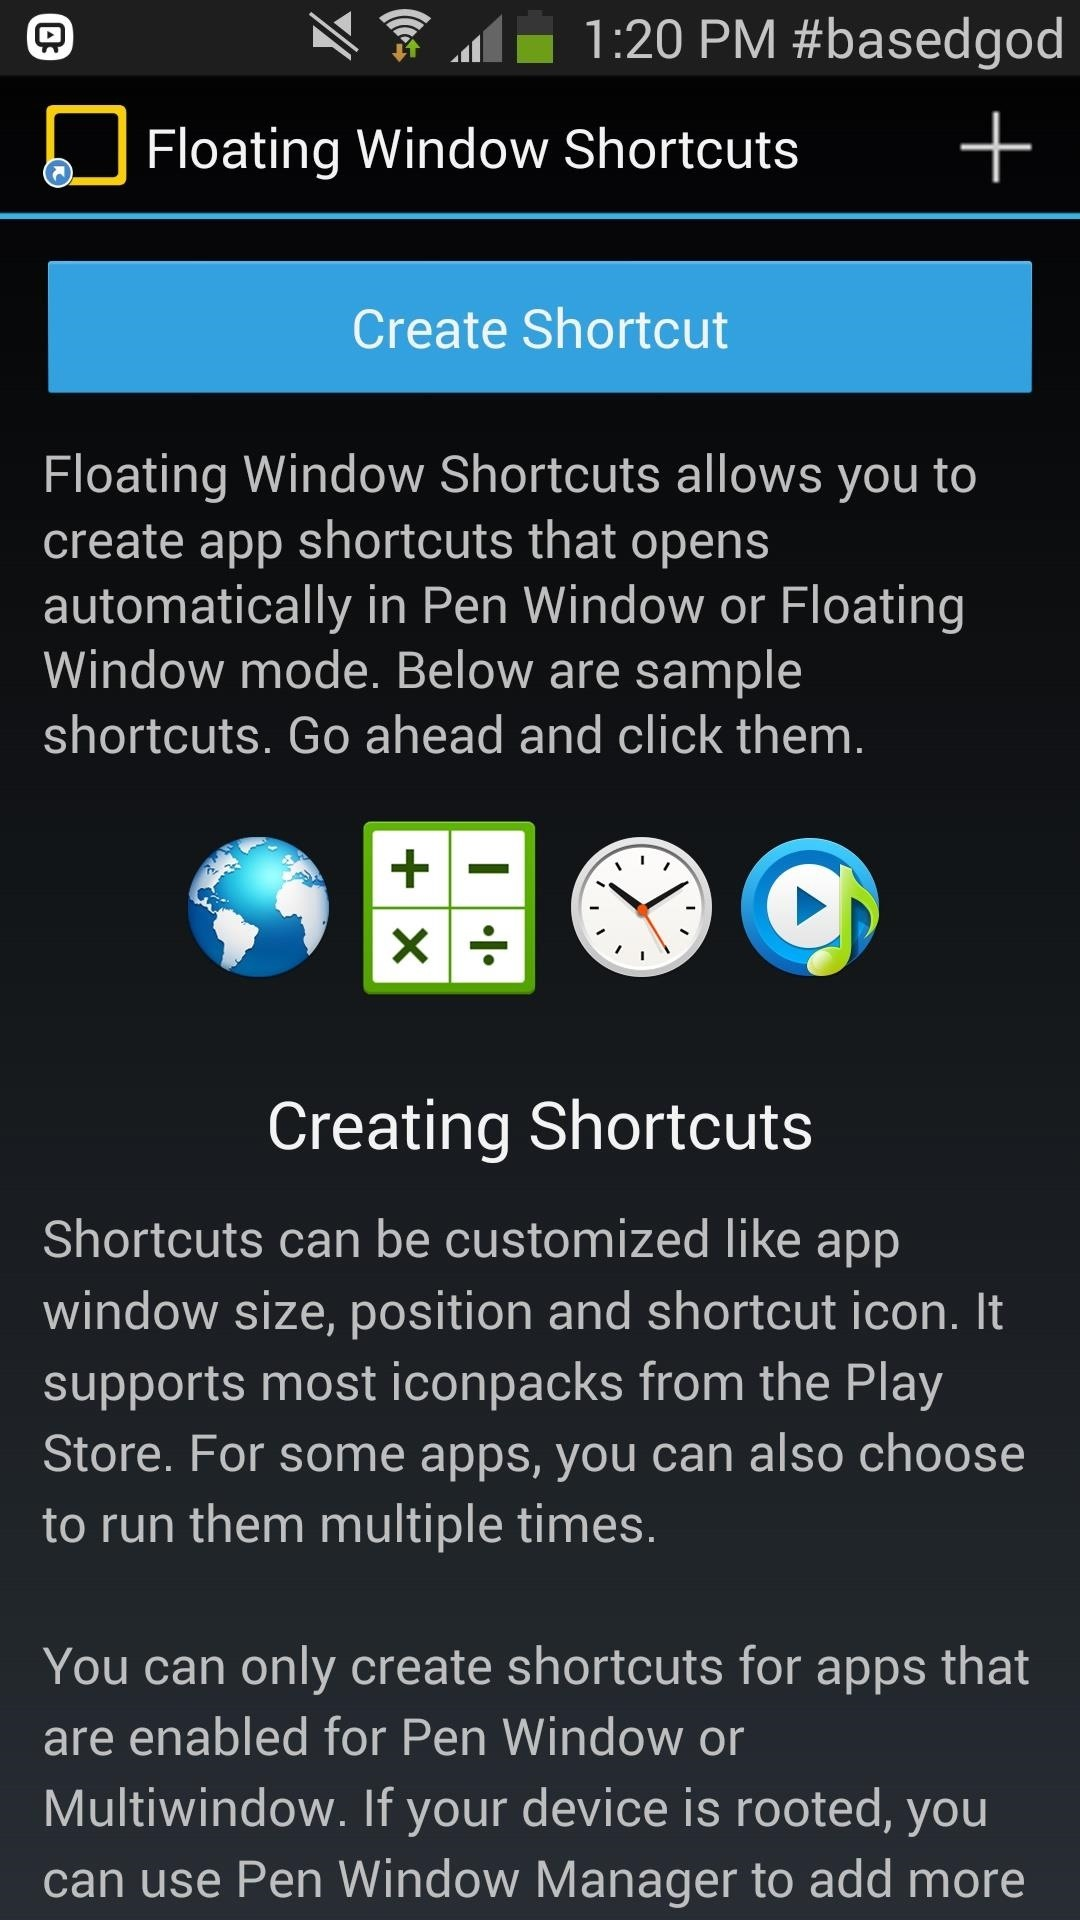 How to Create Pen Window App Shortcuts on Your Galaxy Note 3 Without Using the S Pen